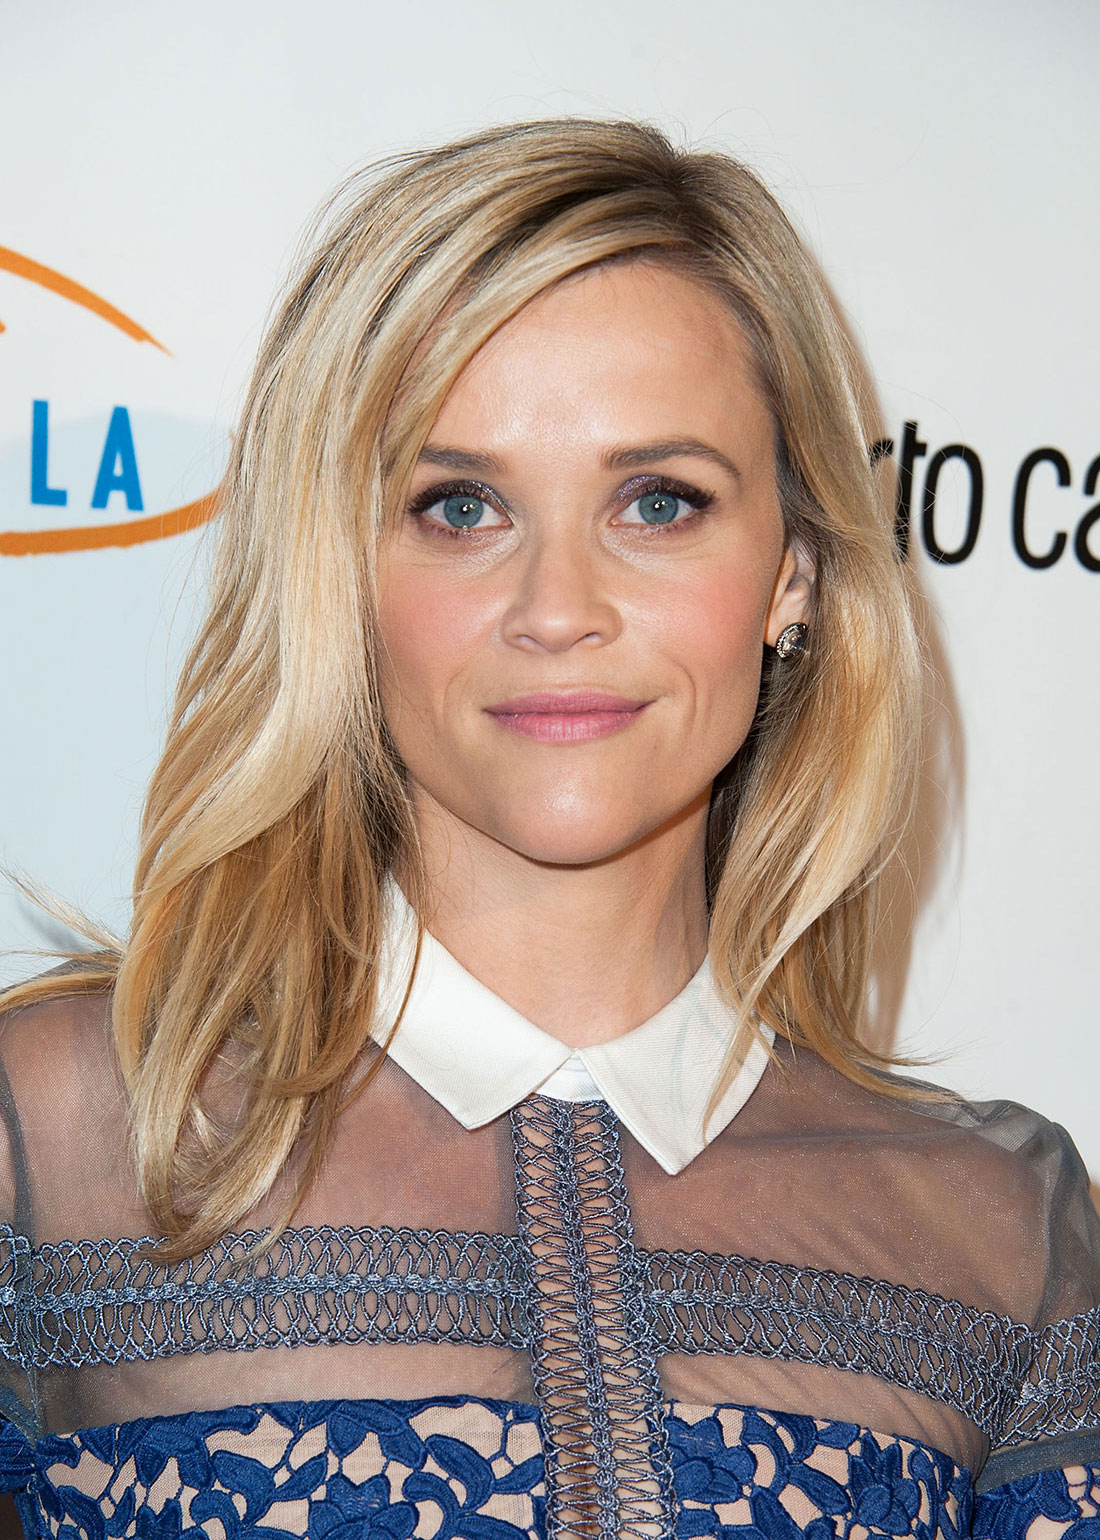 Heart Shaped Face Reese Witherspoon